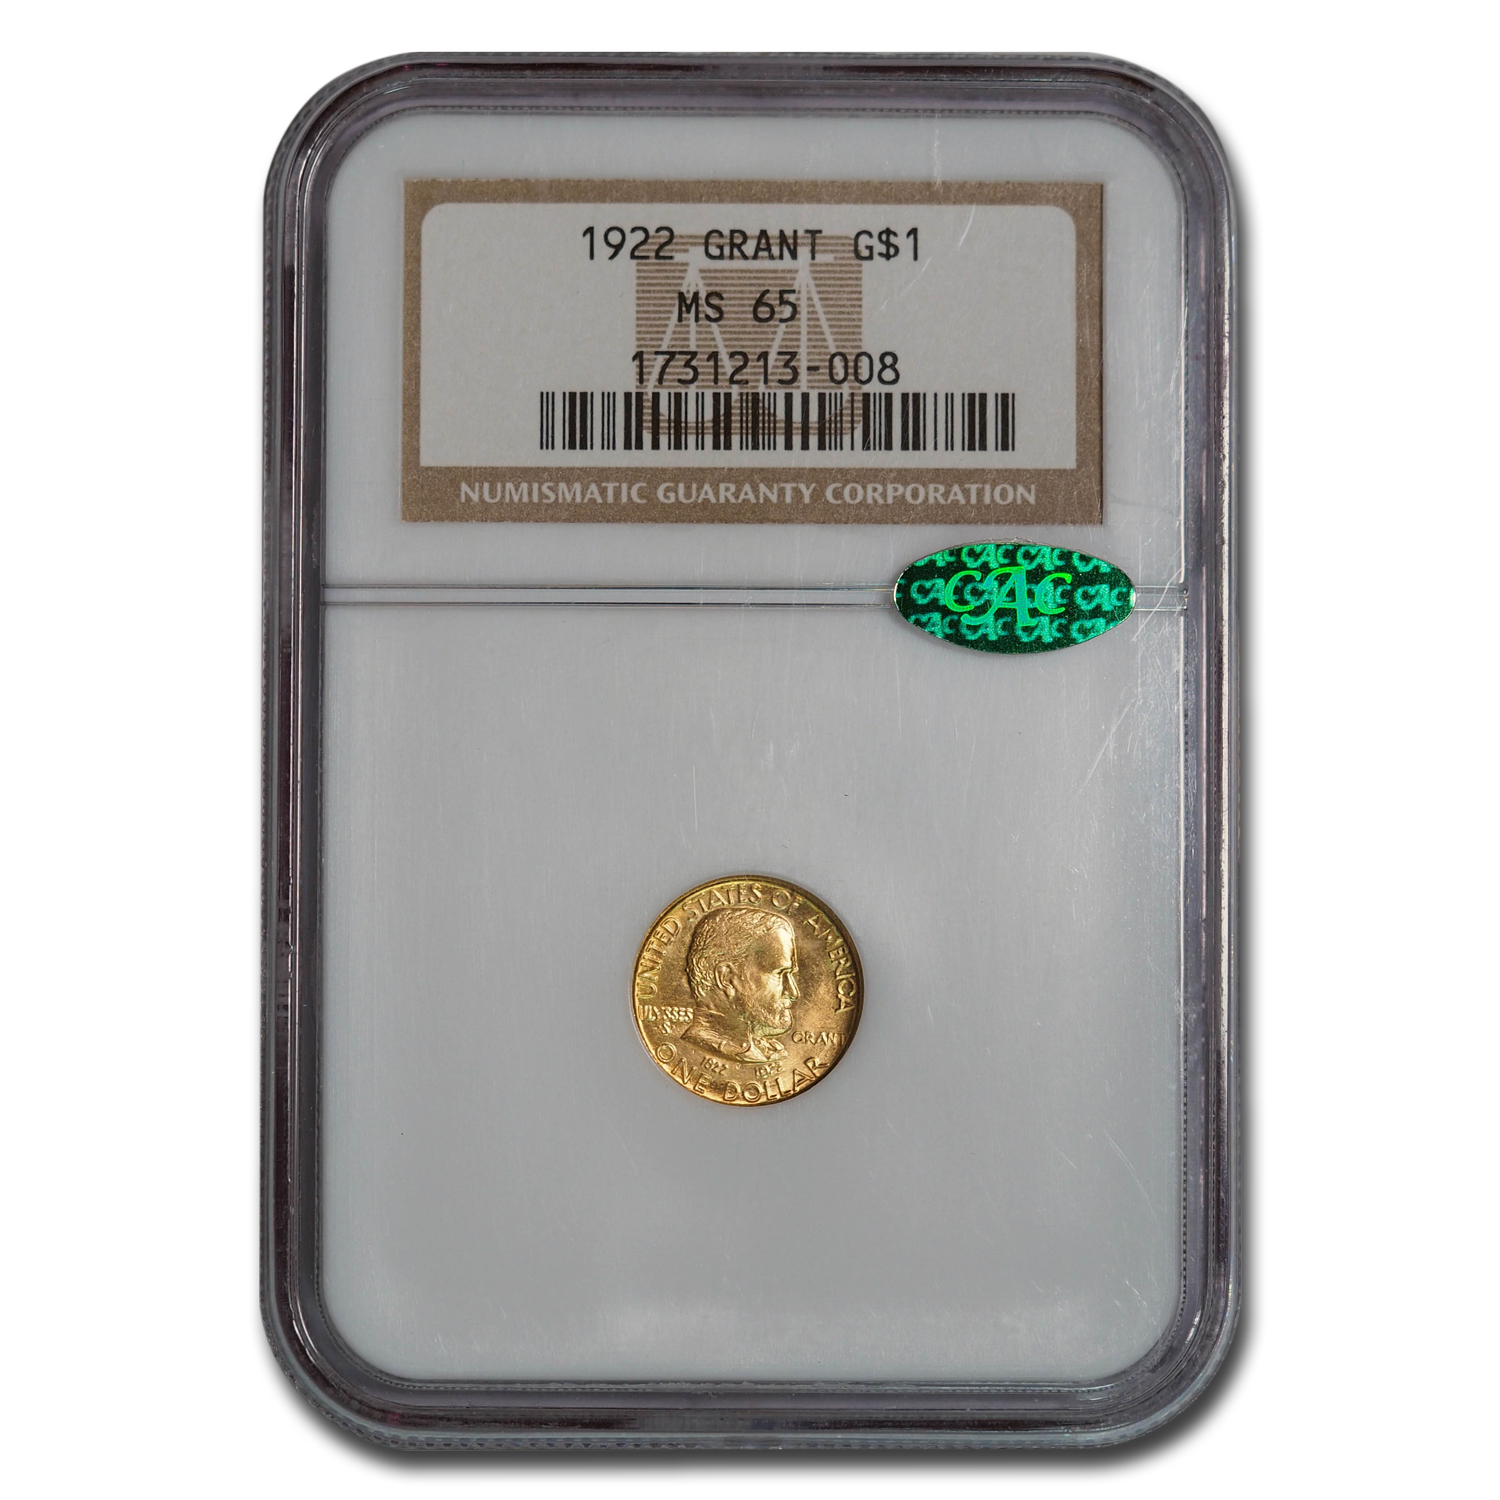 1922 Gold $1.00 Grant No Star MS-65 NGC (CAC)